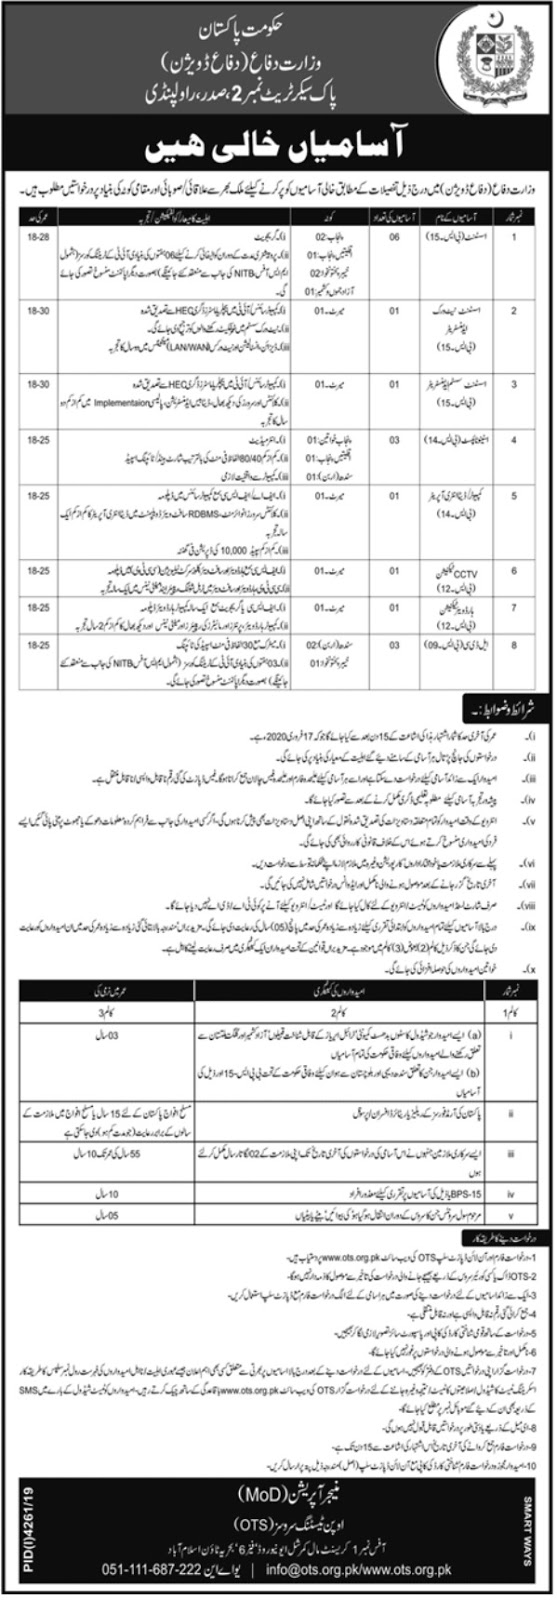 Ministry of Defence Jobs 2020 for 48+ Assistants, Clerks, Operators, Driver & Others in Pakistan Armed Services Board